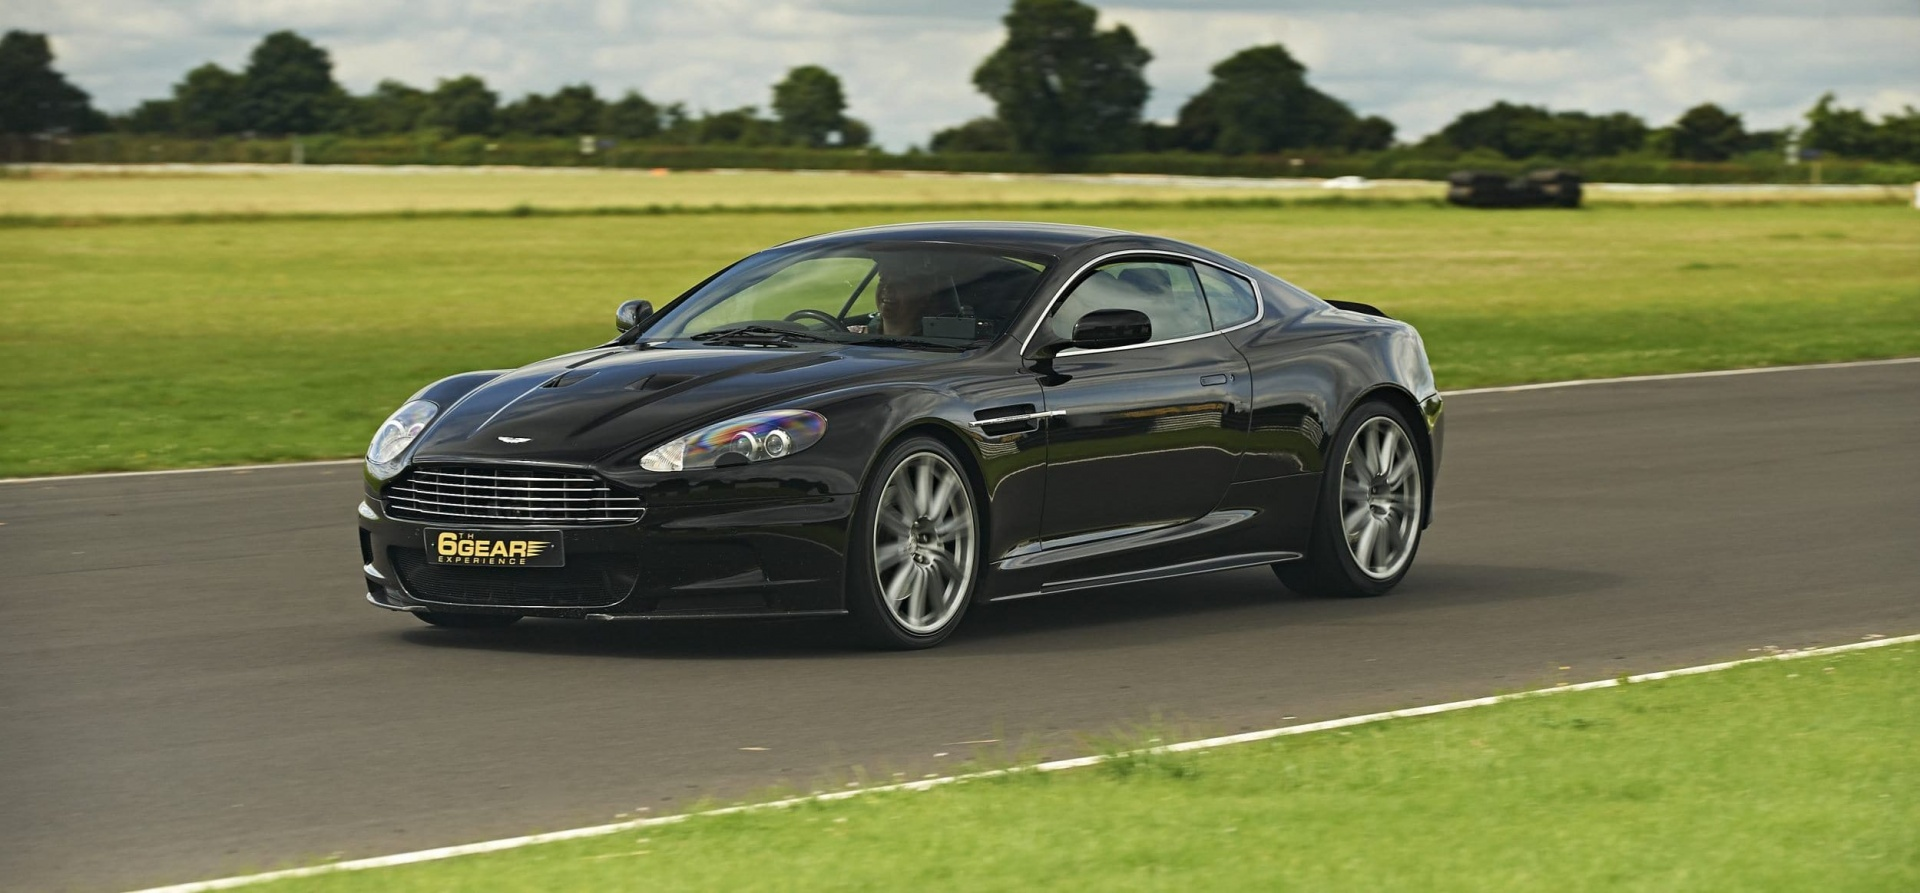 drive an aston martin dbs at a top uk driving centre experience days. Black Bedroom Furniture Sets. Home Design Ideas